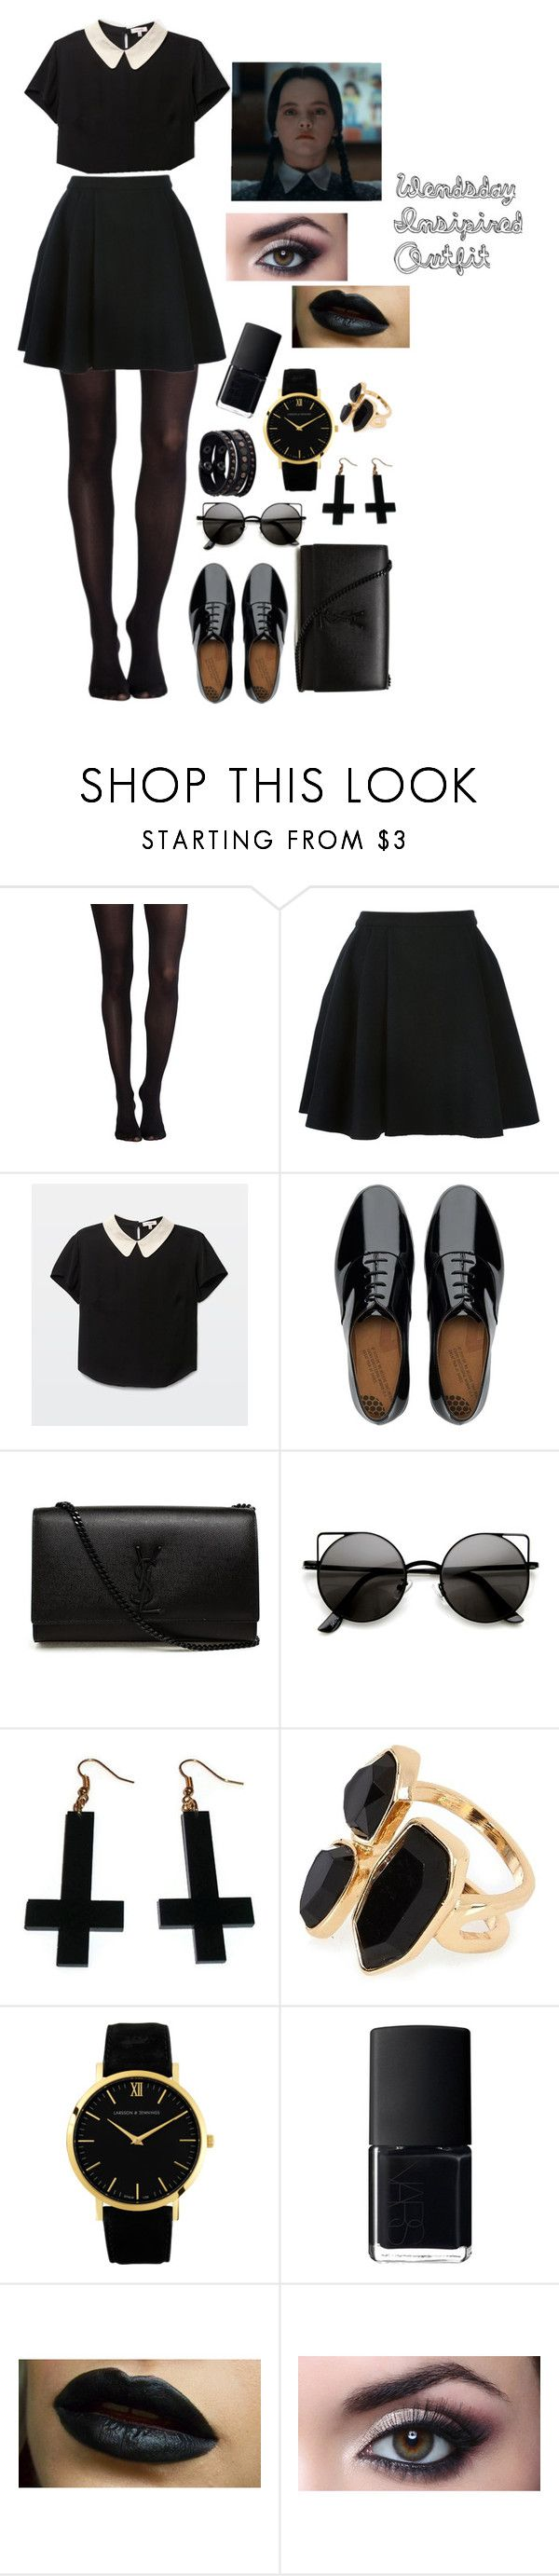 """""""Inspired Wendsday Outfit/Costume"""" by omfvalerie ❤ liked on Polyvore featuring SPANX, Avelon, FitFlop, Yves Saint Laurent, Chicnova Fashion, River Island, Larsson & Jennings, NARS Cosmetics and Replay"""